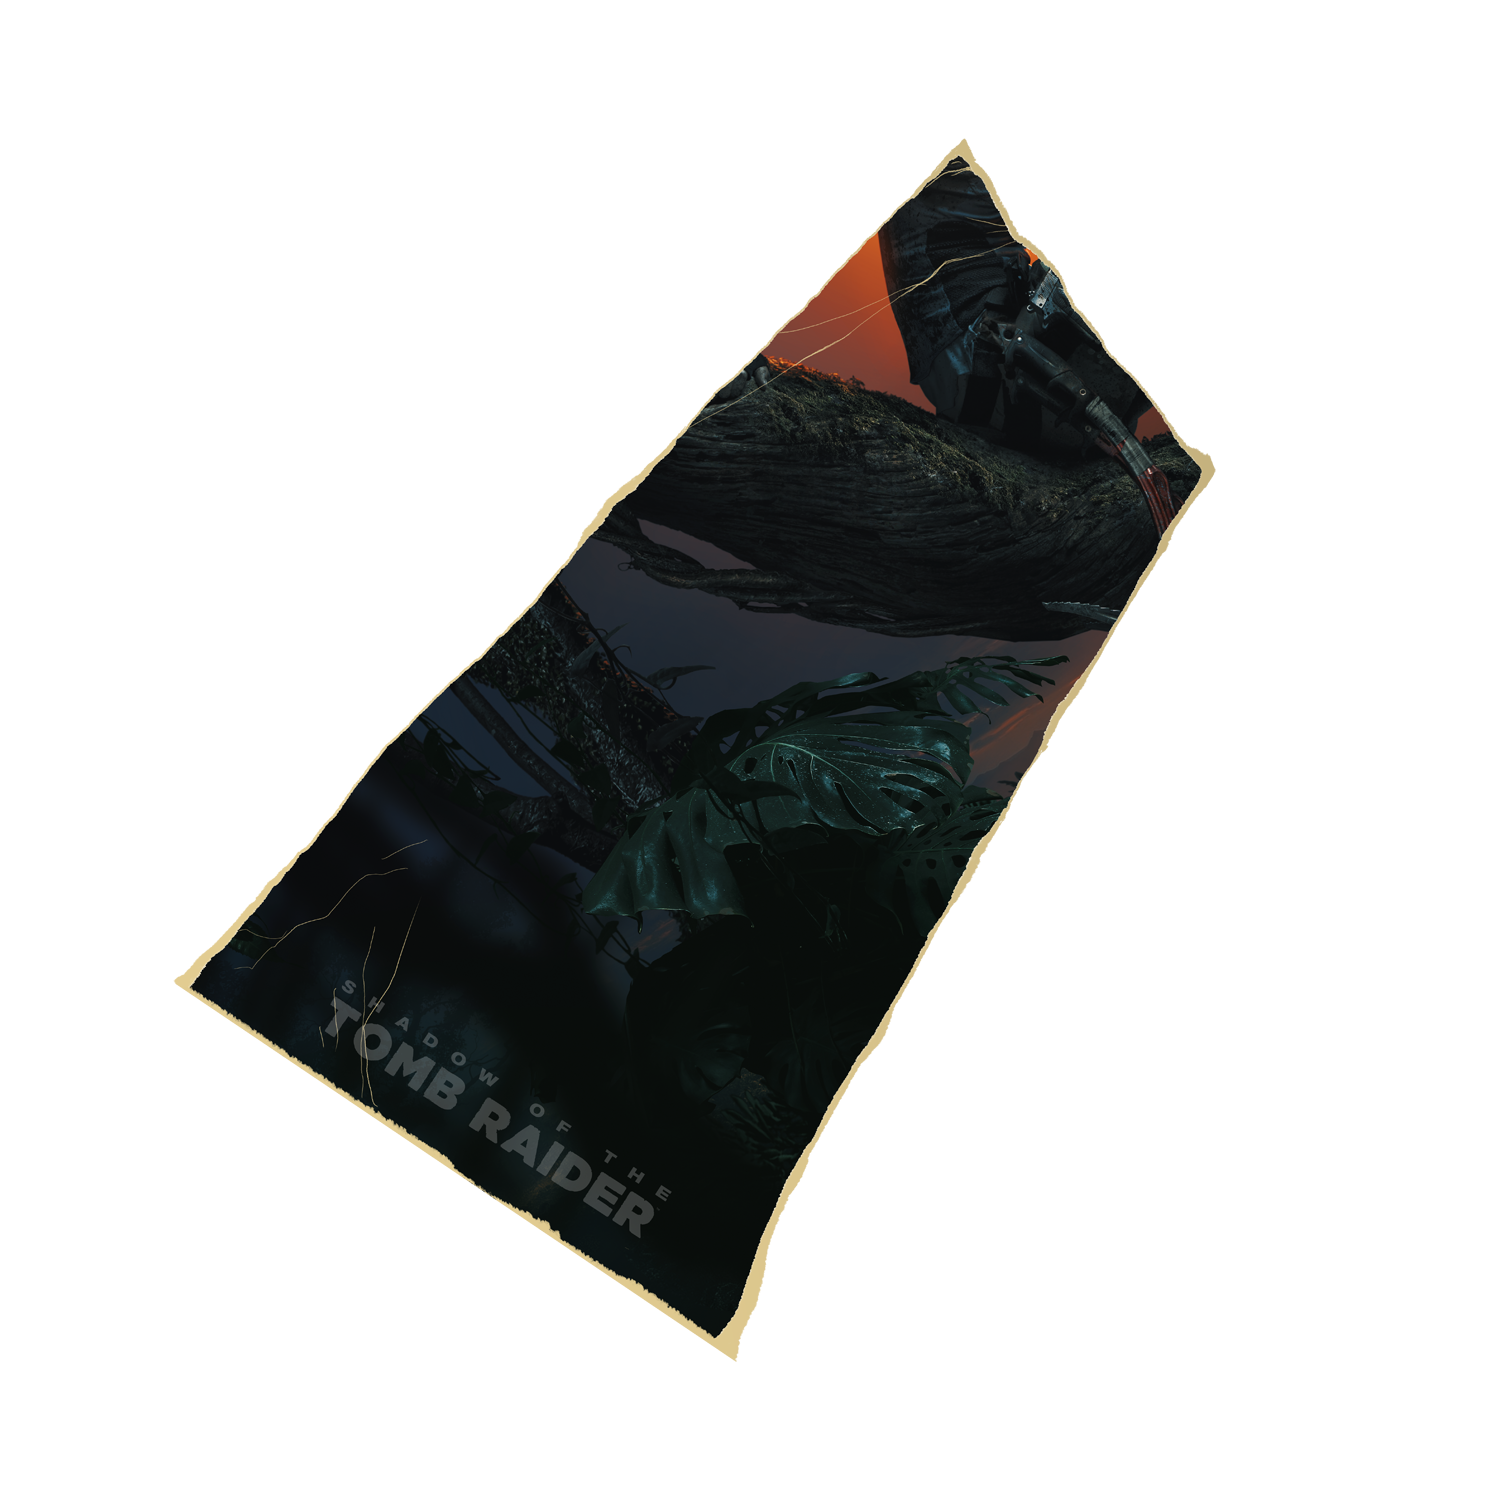 ShadowOfTombRaider_PuzzlePieces_5